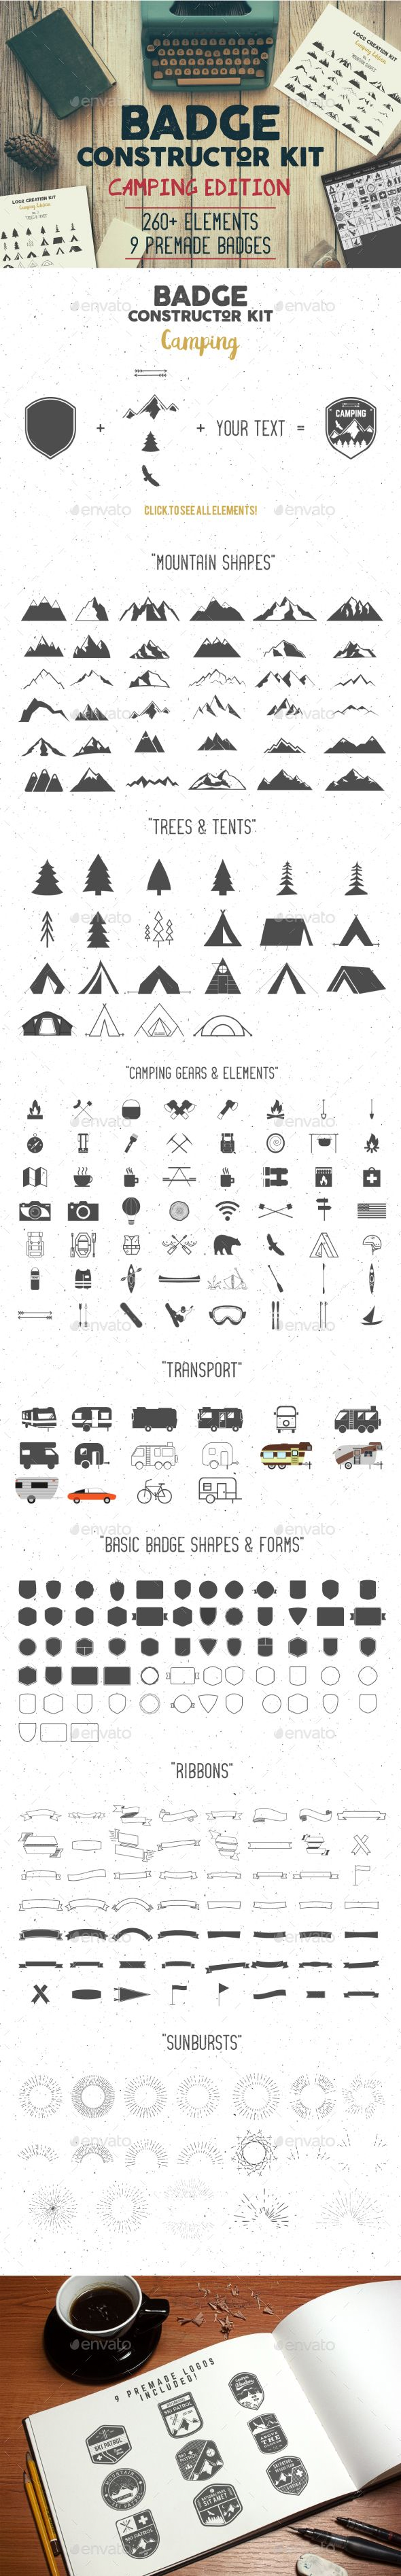 Badge Constructor Kit - Camping Edition . Download here: http://graphicriver.net/item/badge-constructor-kit-camping-edition/14731626?ref=ksioks